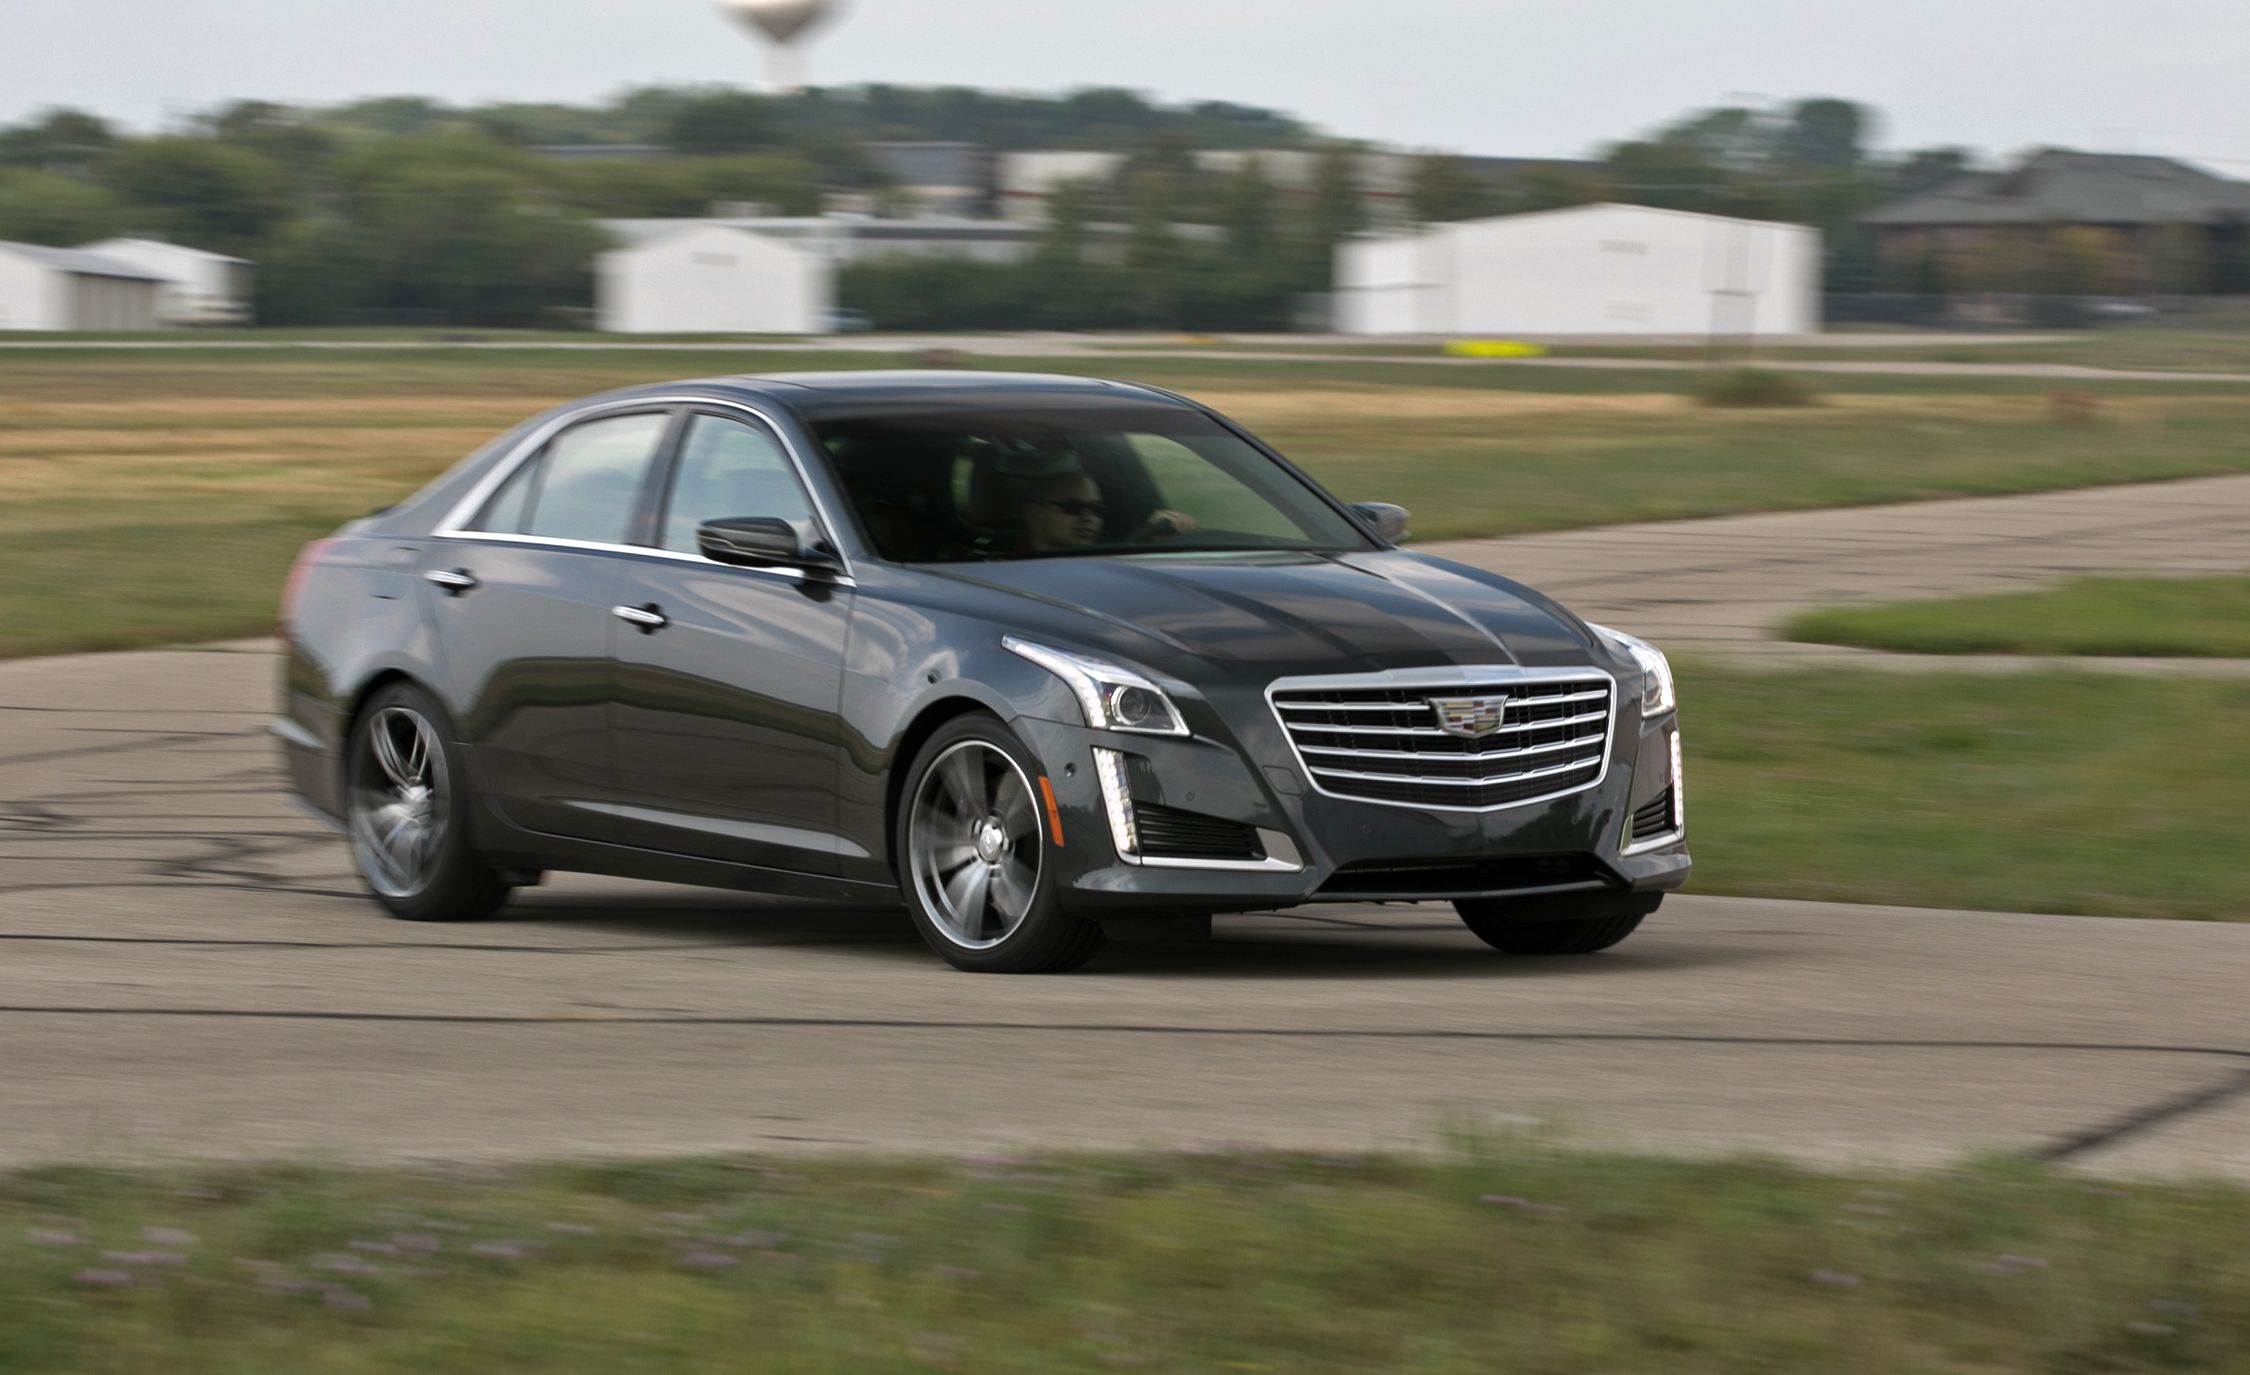 2019 Cadillac Cts Reviews Cadillac Cts Price Photos And Specs